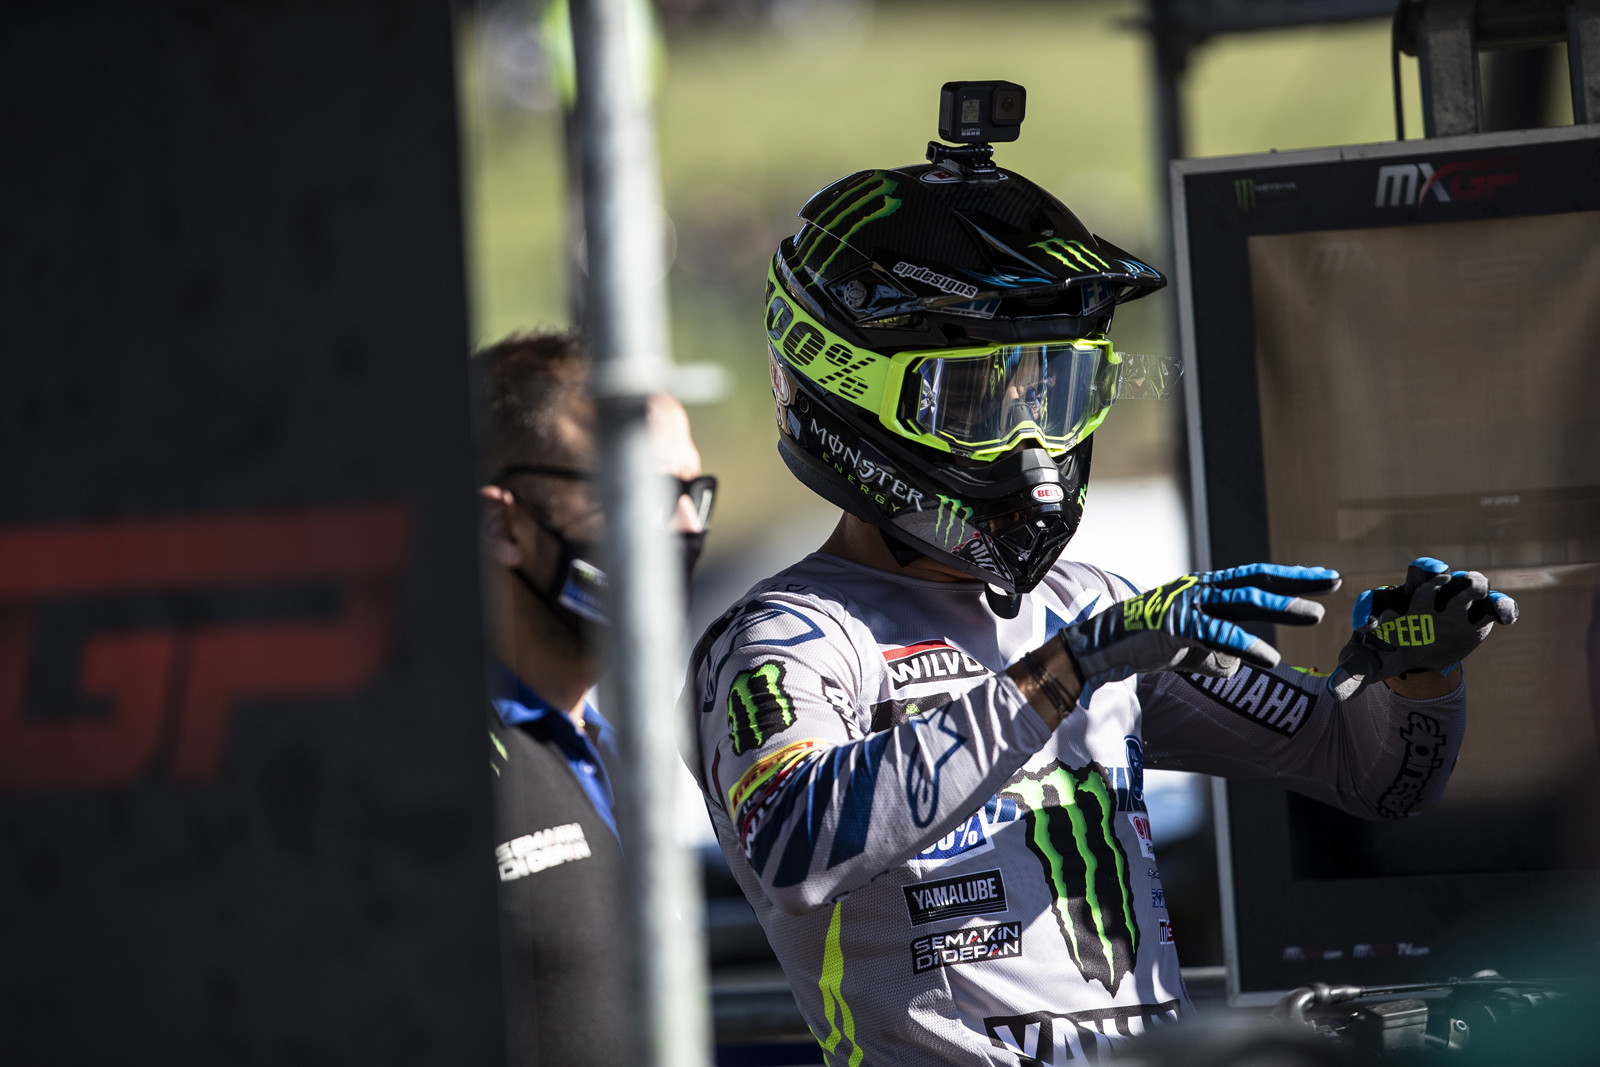 Gautier Paulin is working on his hocus pocus. He is also testing the new Bell helmet that we've seen on Tomac and Webb.